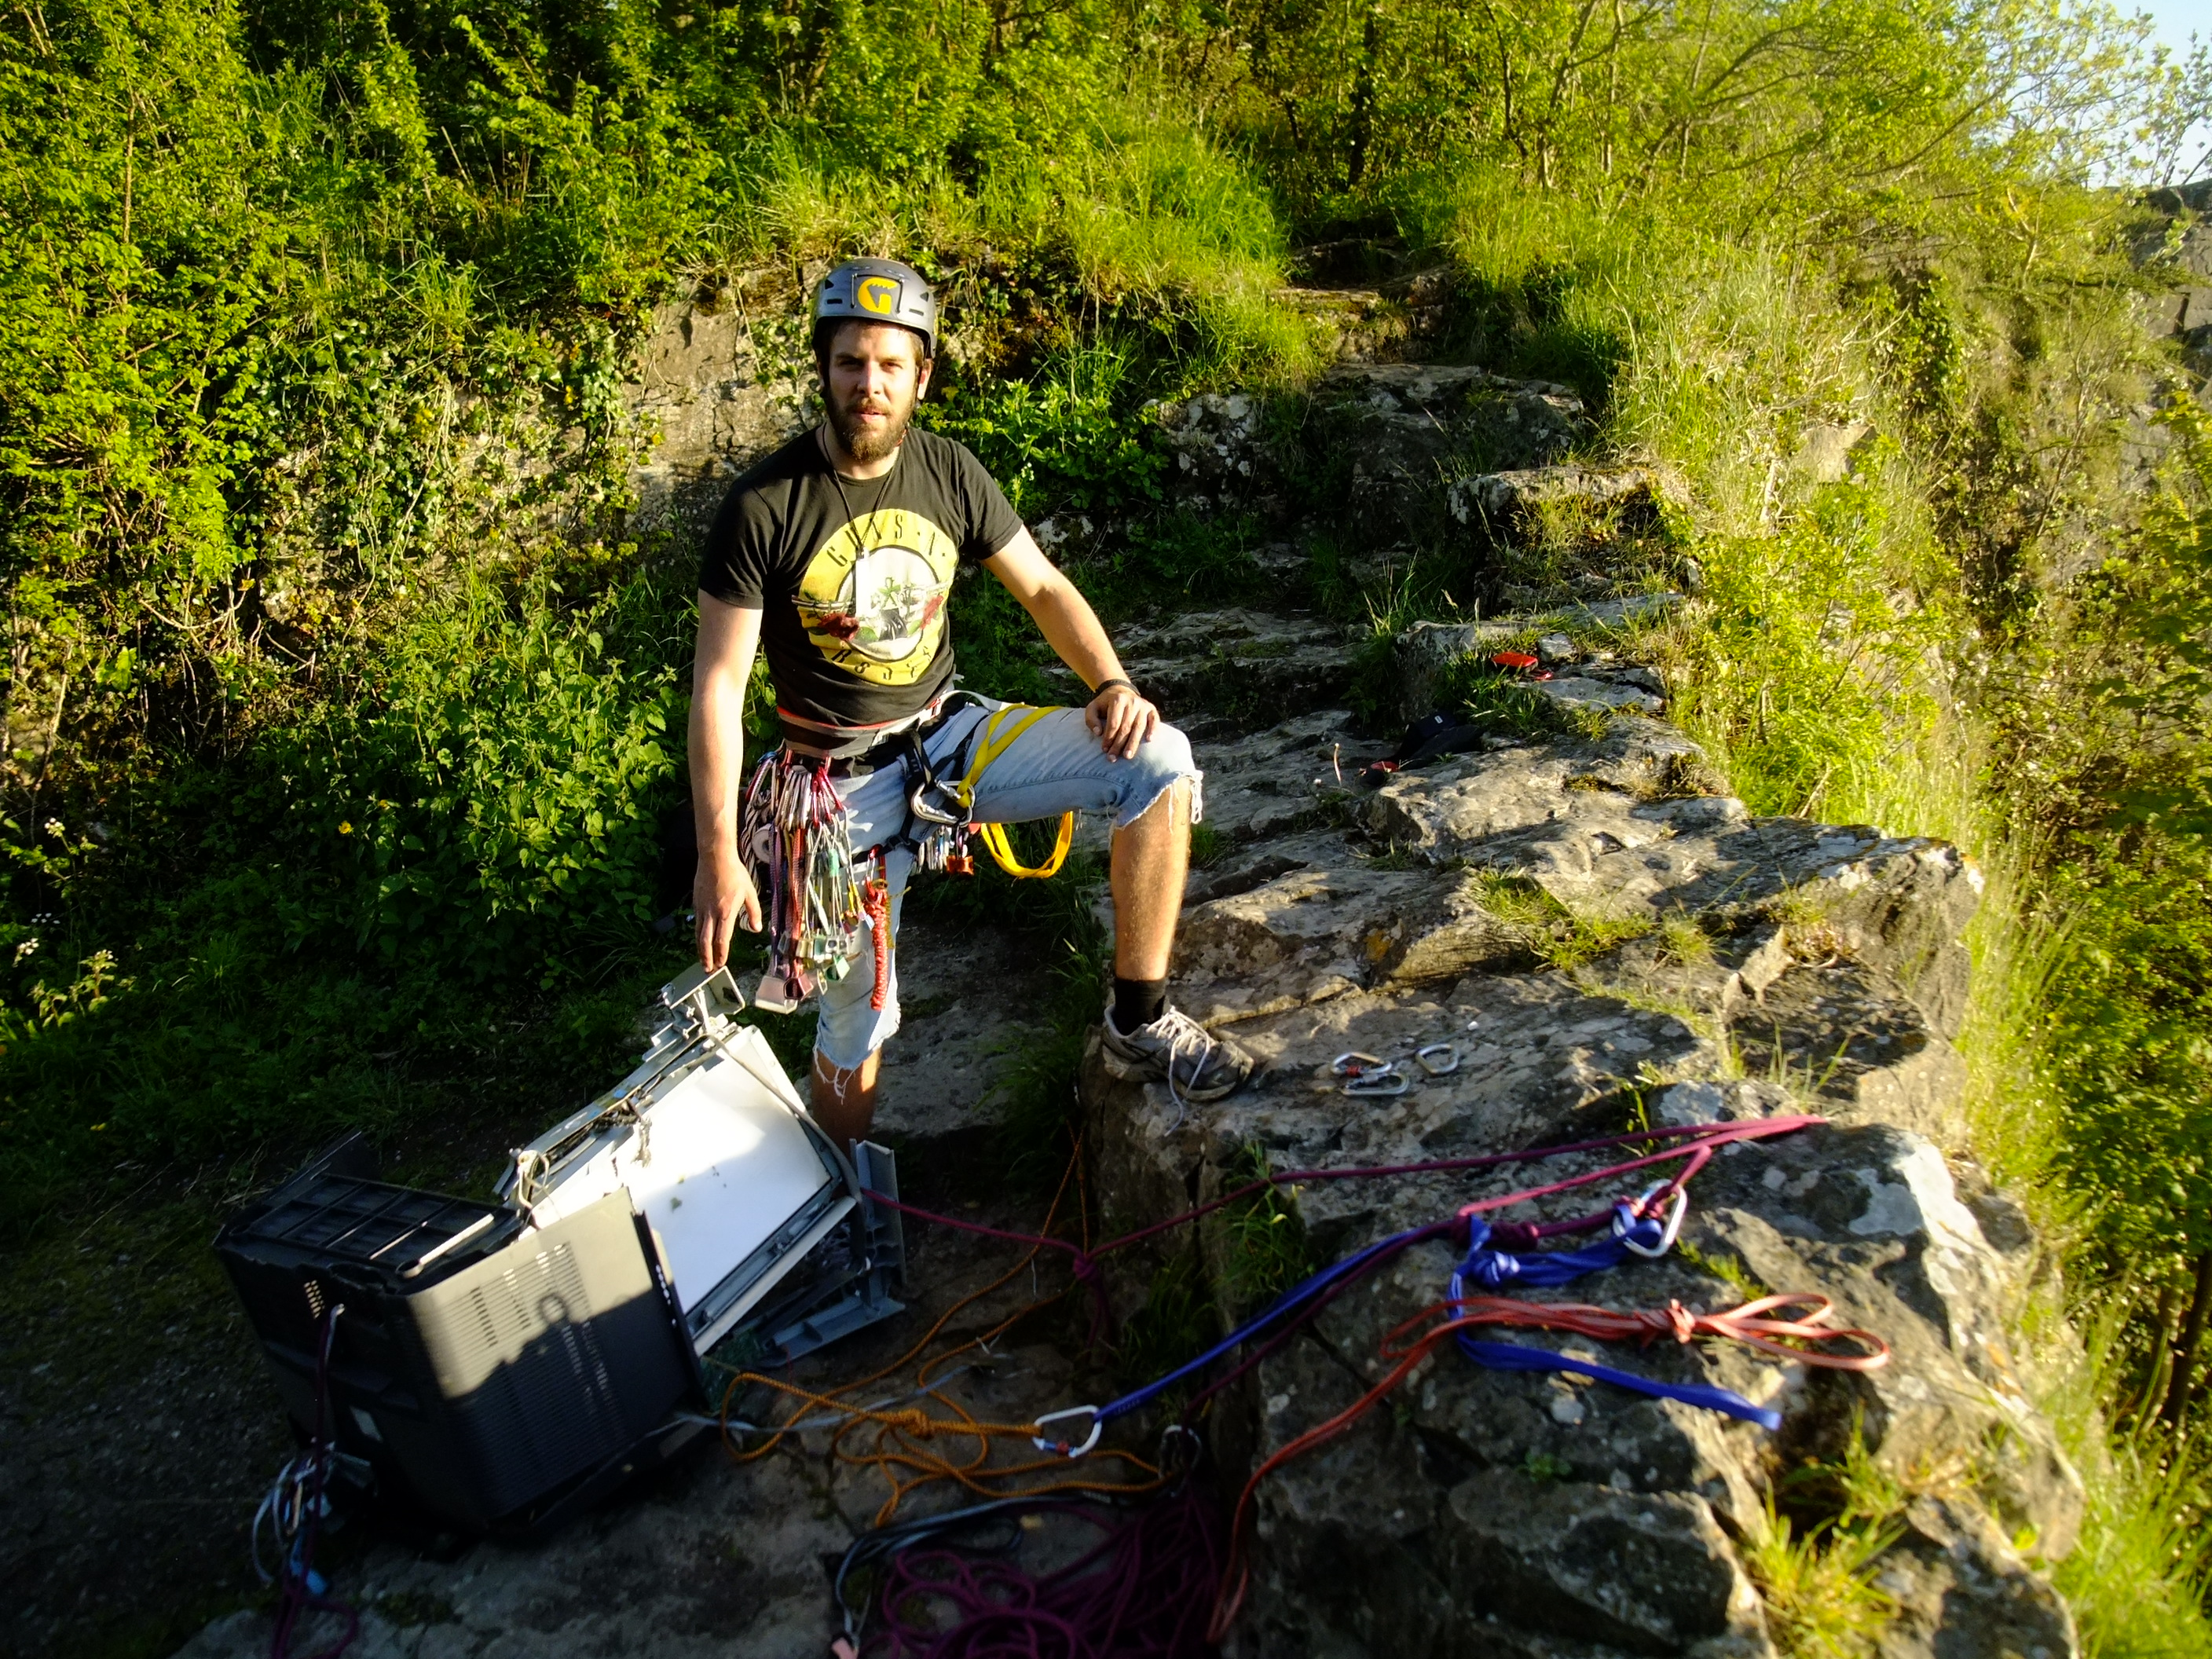 Removing rubbish from Wintour's Leap crag, Wye Valley